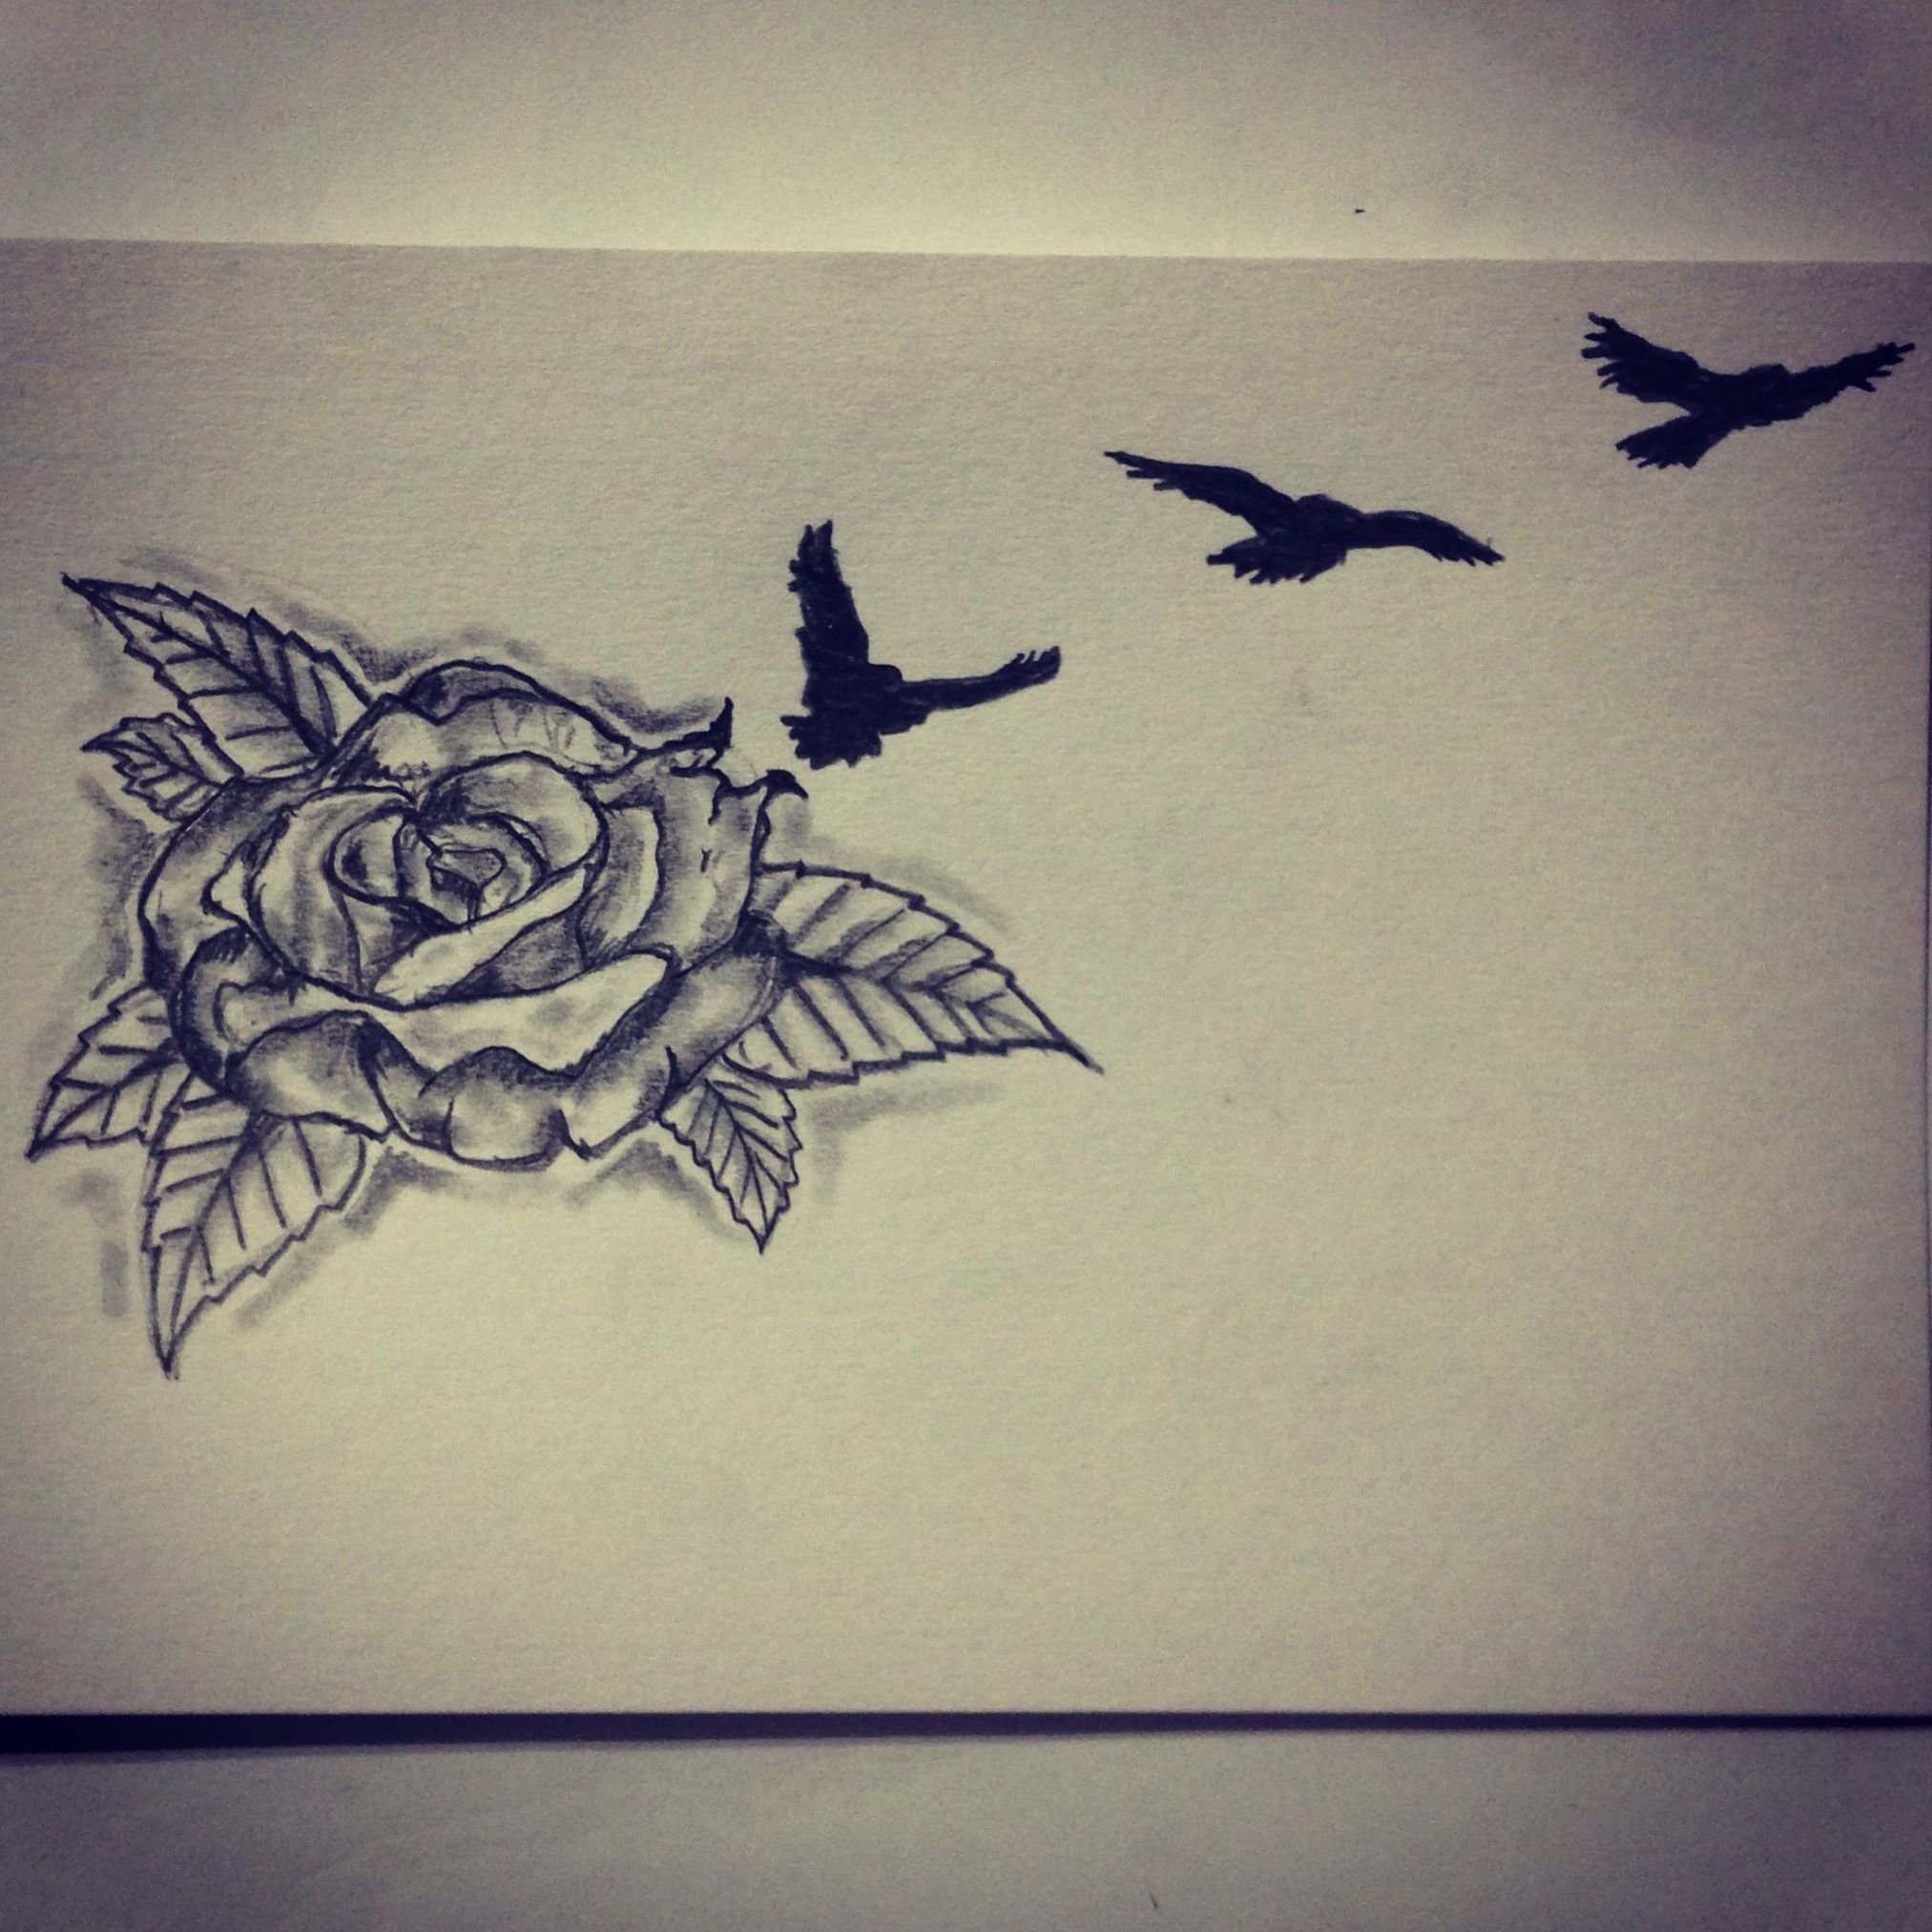 rose bird tattoo sketch d tattoo art sketches all pieces and pics are done by me. Black Bedroom Furniture Sets. Home Design Ideas